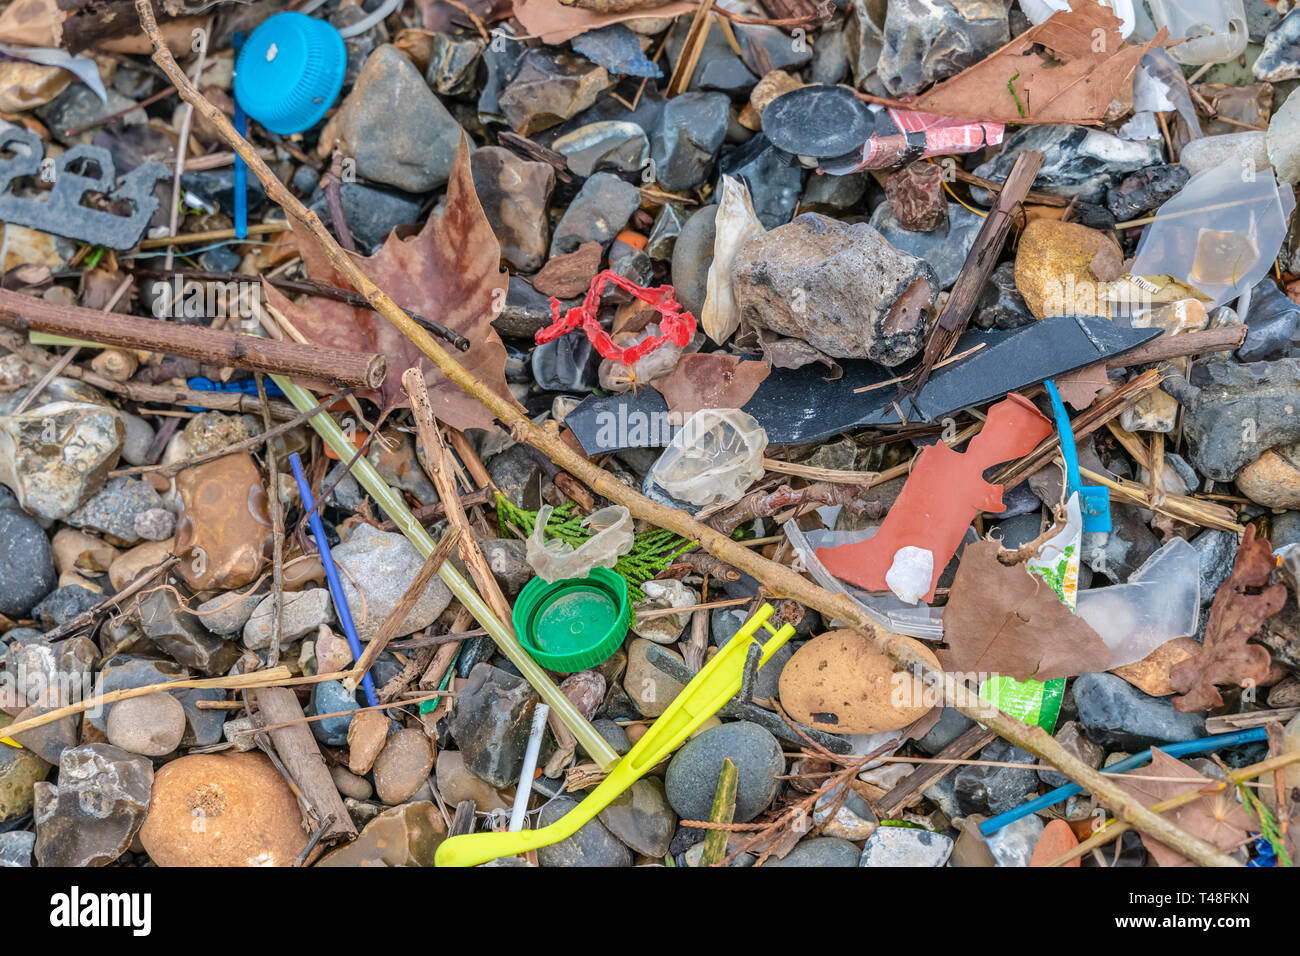 Plastic pollution found on the beach. The accumulation of plastic objects in the Earth's environment adversely affects wildlife and humans. - Stock Image